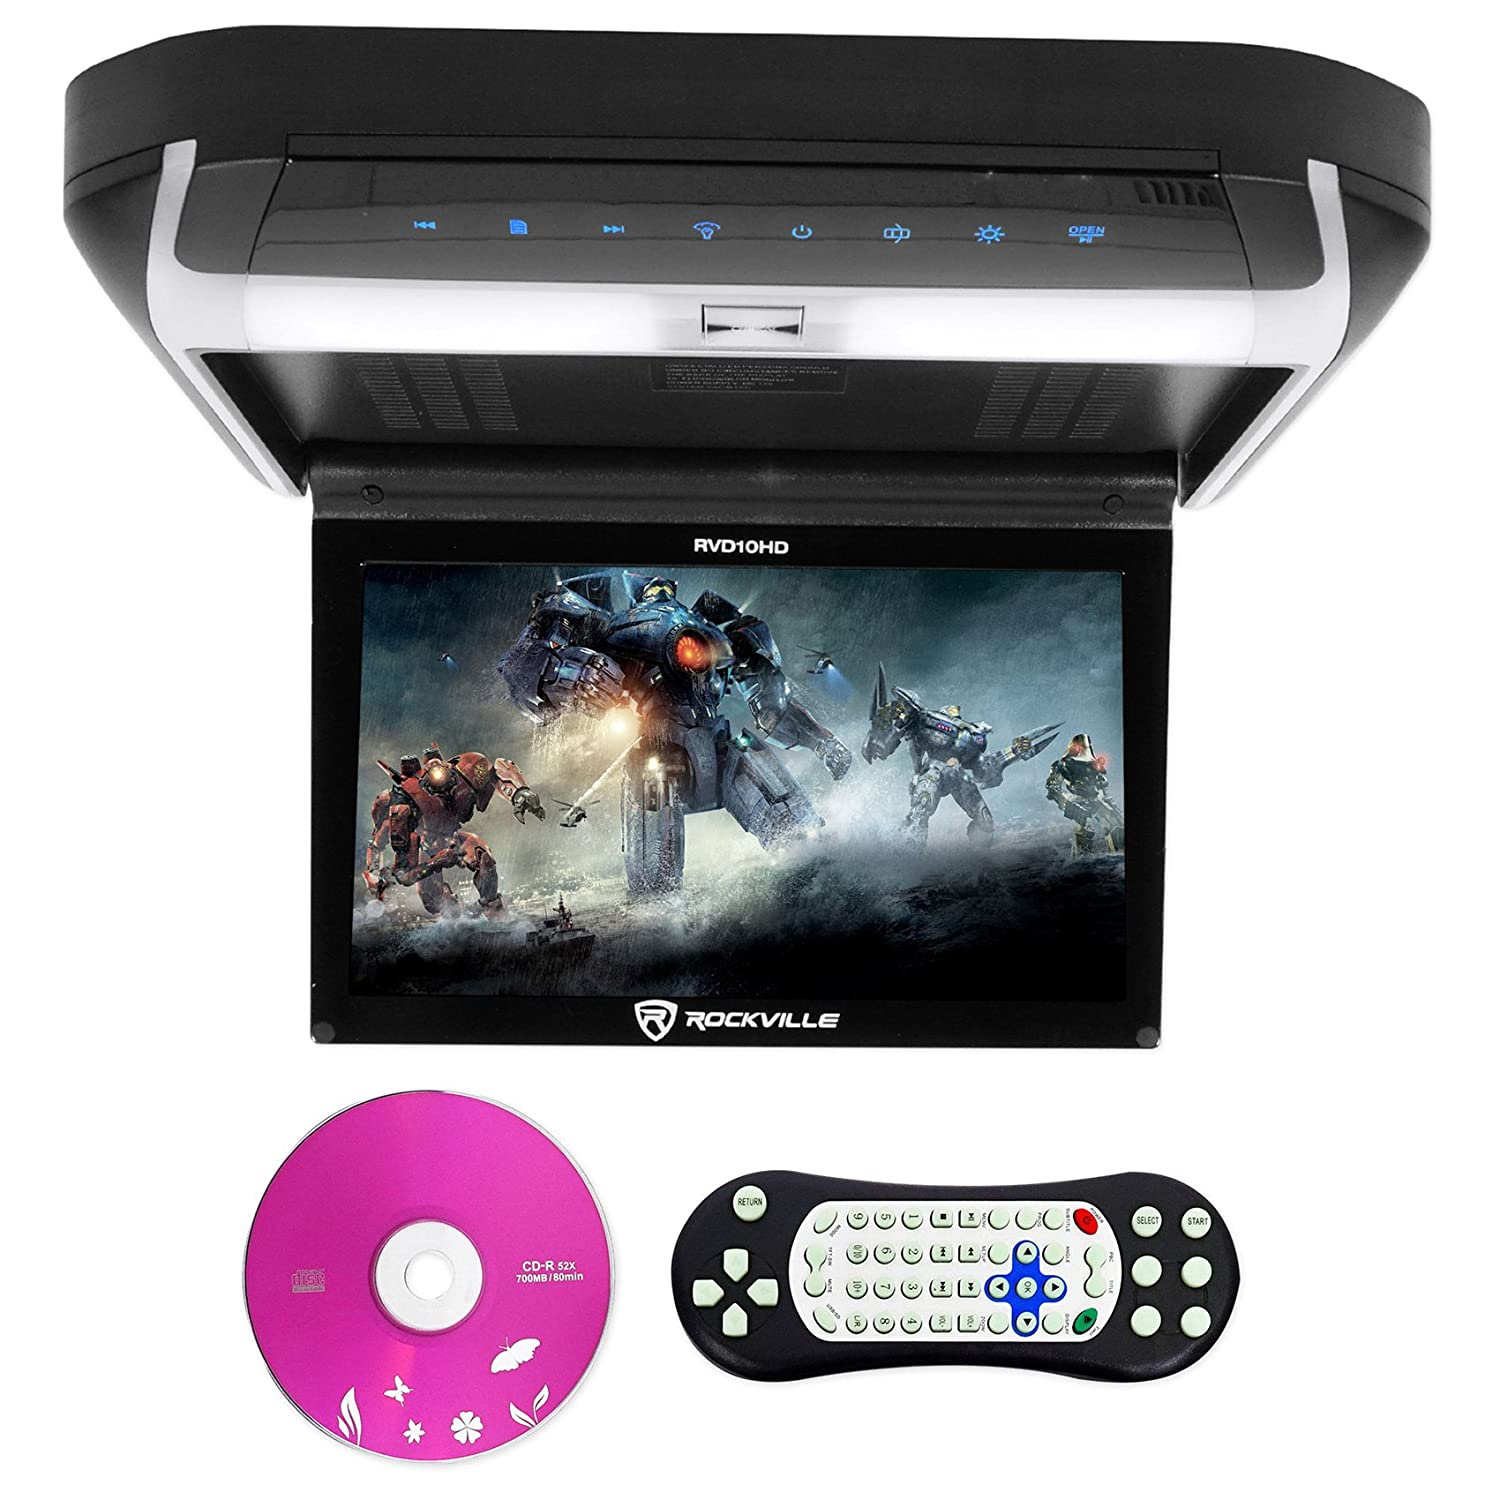 "Amazon.com: Rockville RVD10HD-BK 10.1"" Flip Down Monitor DVD Player, HDMI,  USB, Games, LED: Cell Phones & Accessories"